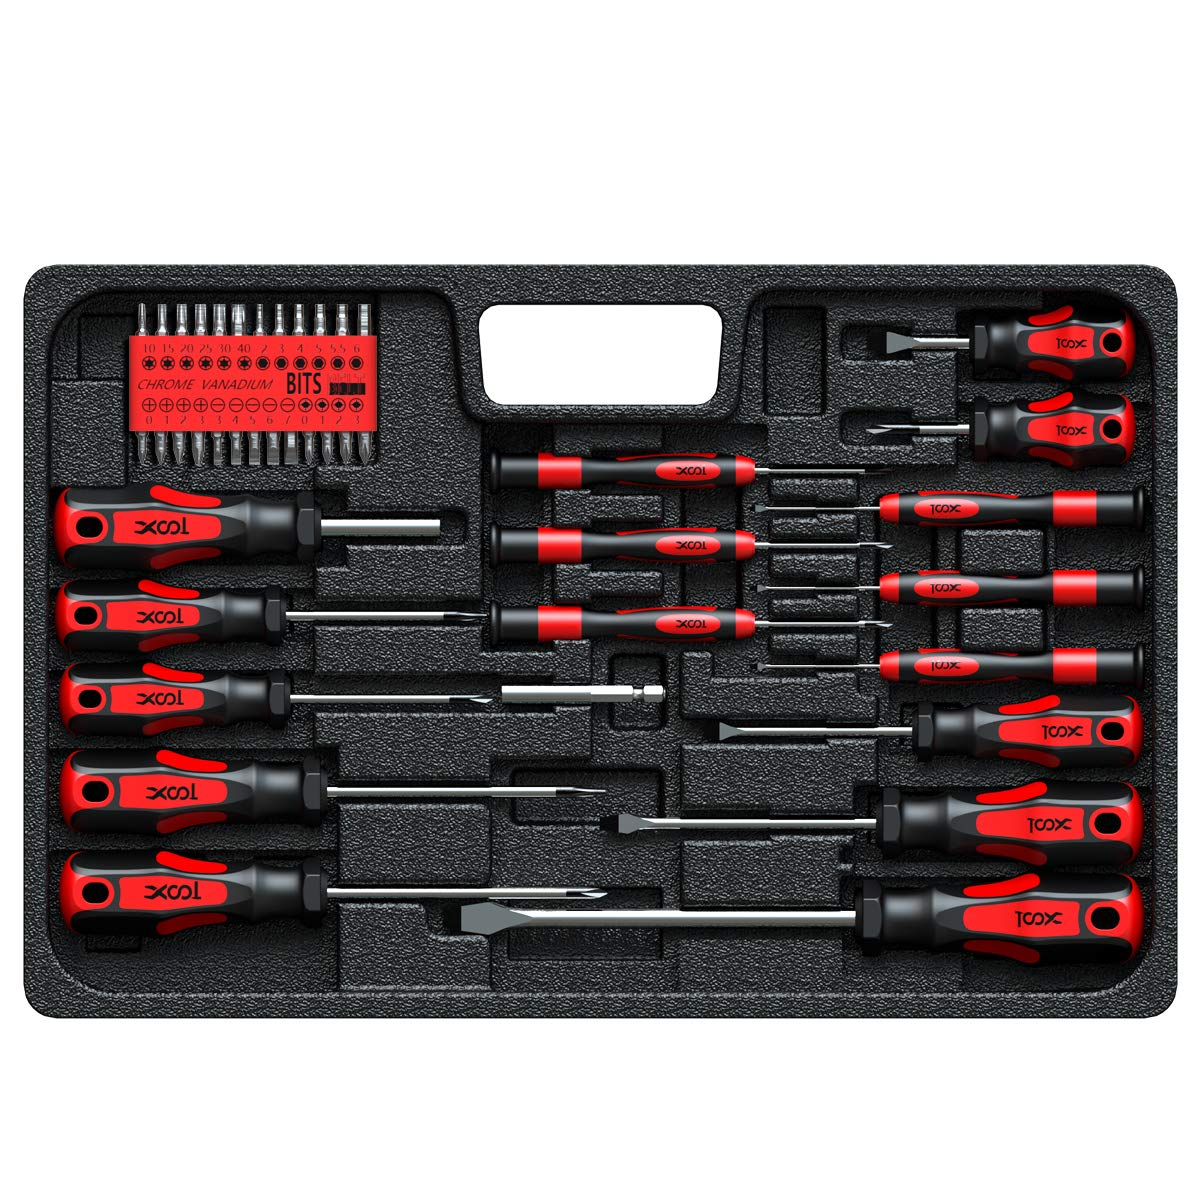 Screwdriver Set, Professional Screwdriver Set with Case, Torx Phillips Slotted Hex Pozi Precision Screwdriver Set,42-PC Made of 6150CRV with Heavy Duty Magnetic Tips for Home Repair,Improvement,Craft